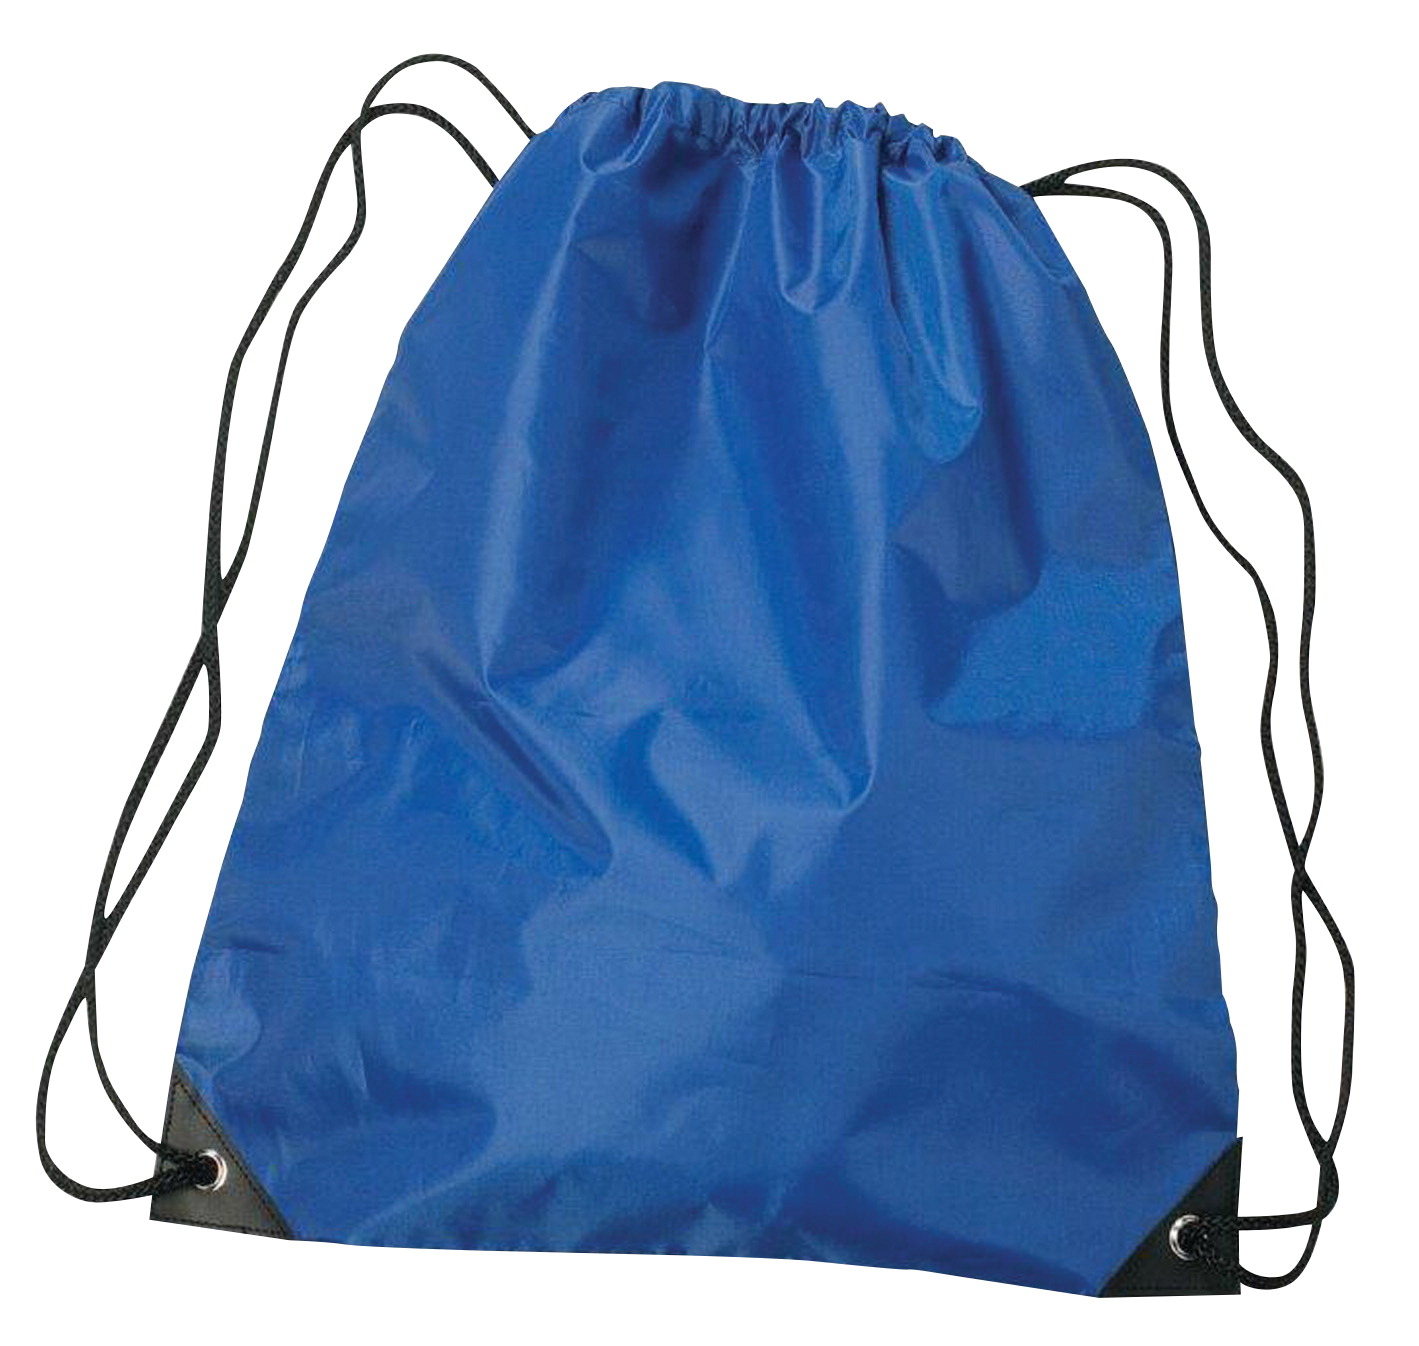 Childcraft Sports Pack, Polyester/Leather, 14 x 18 Inches, Royal Blue